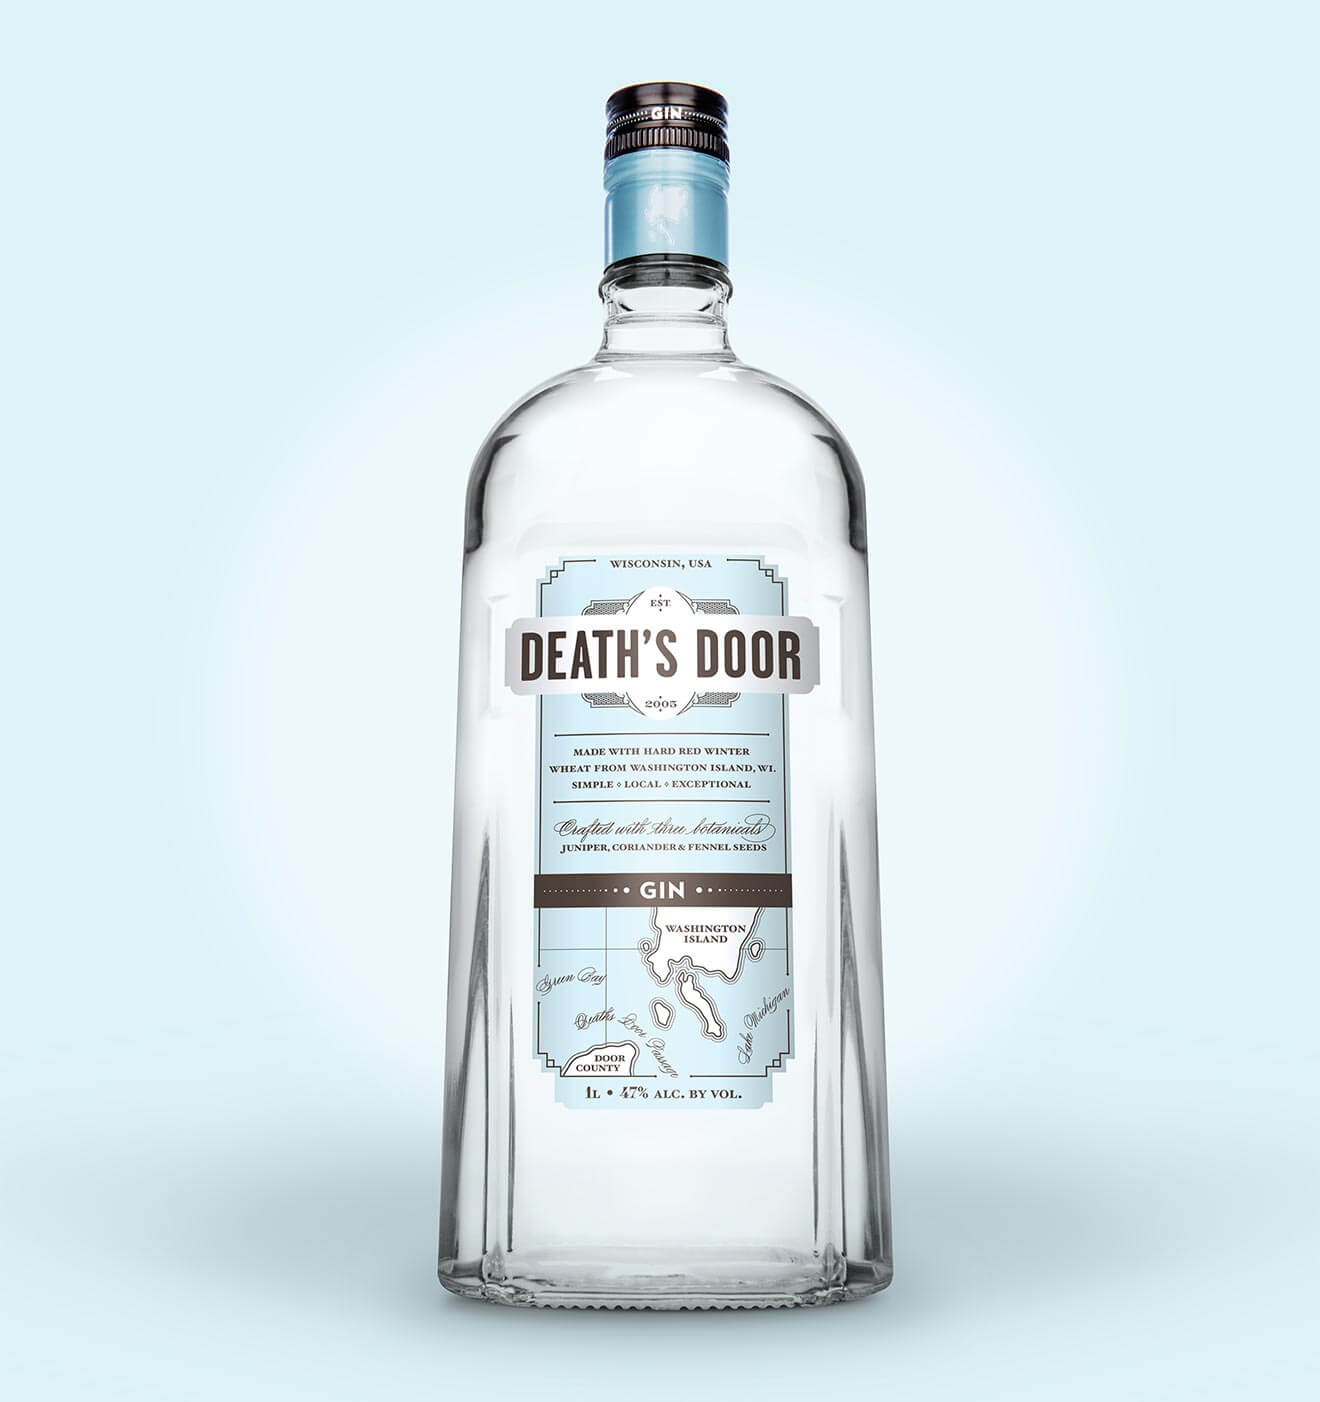 Death's Door Bartender-Friendly Bottle